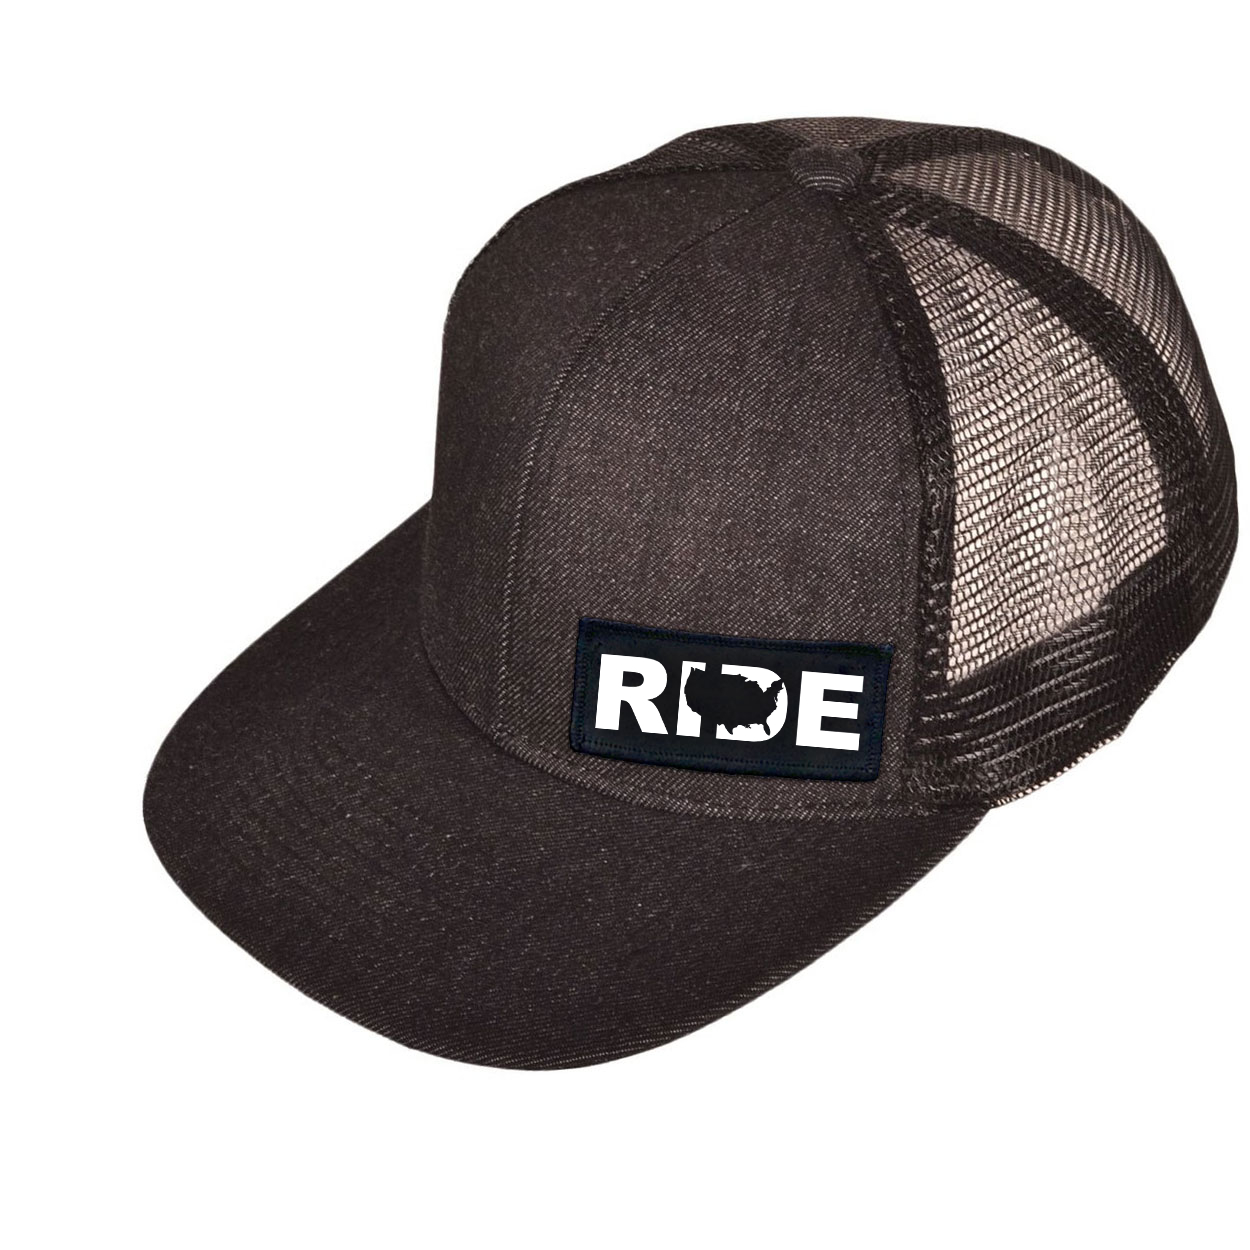 Ride United States Night Out Woven Patch Snapback Flat Brim Hat Black Denim (White Logo)